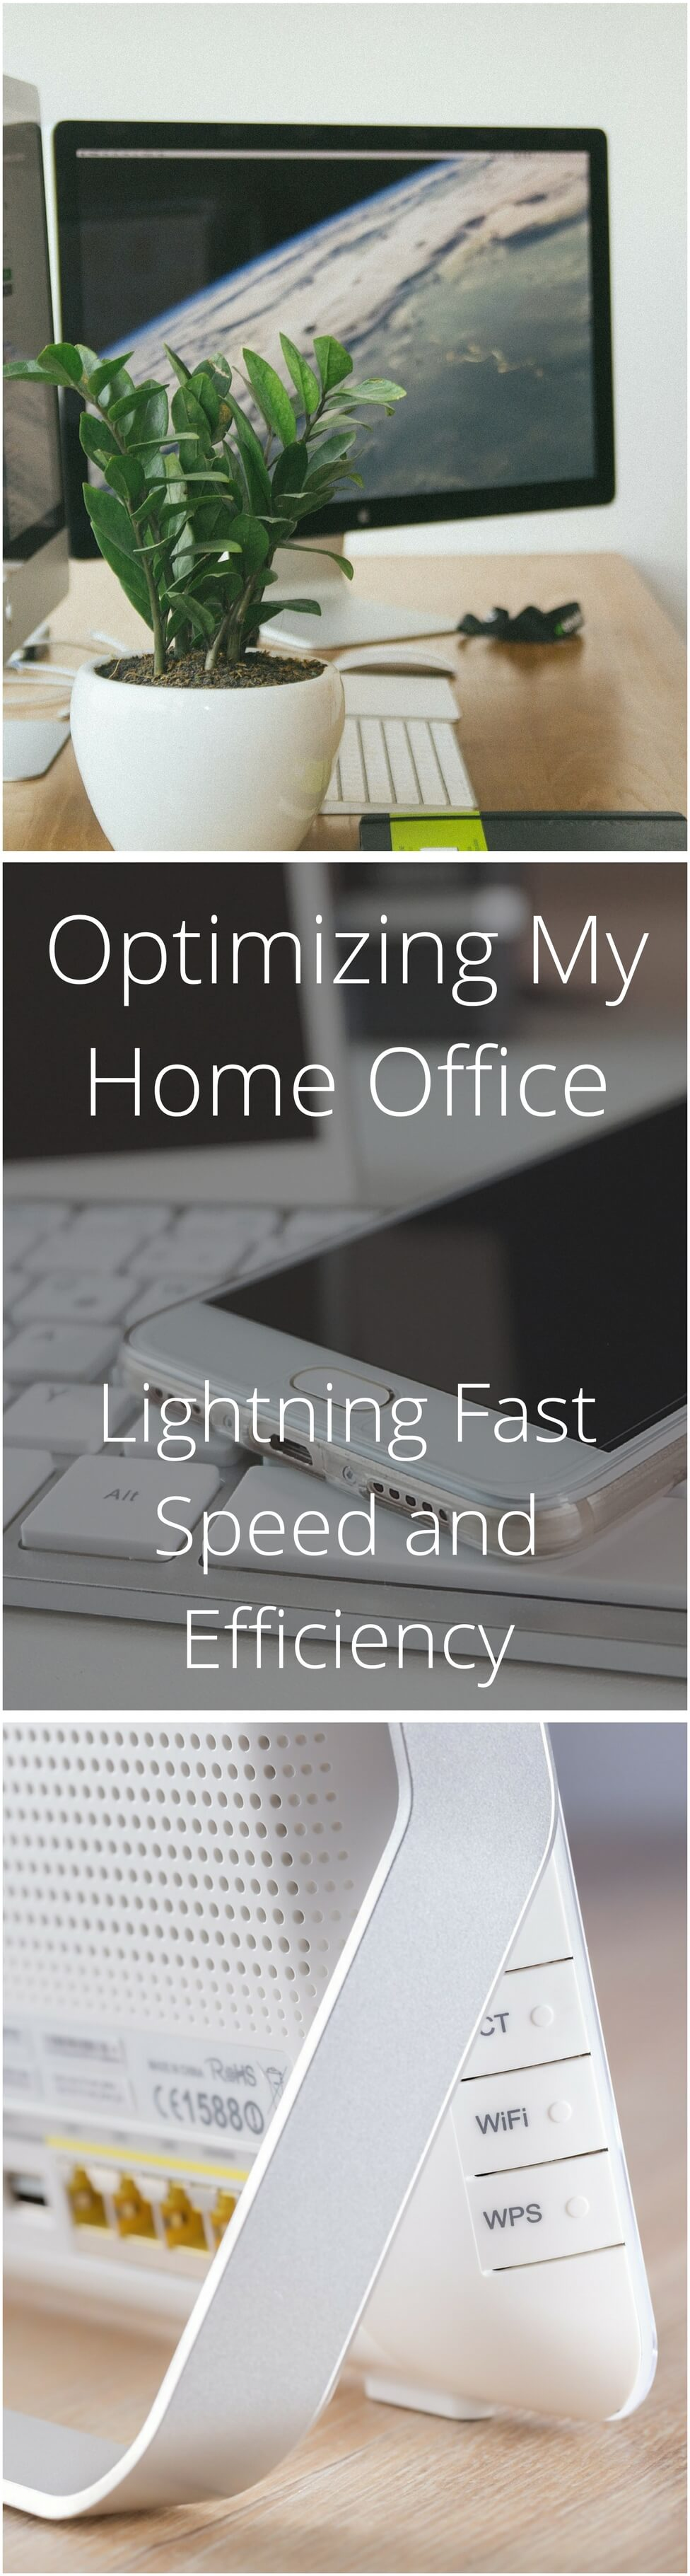 Optimizing My Home Office For Lightning Fast Speed and Efficiency Pinterest